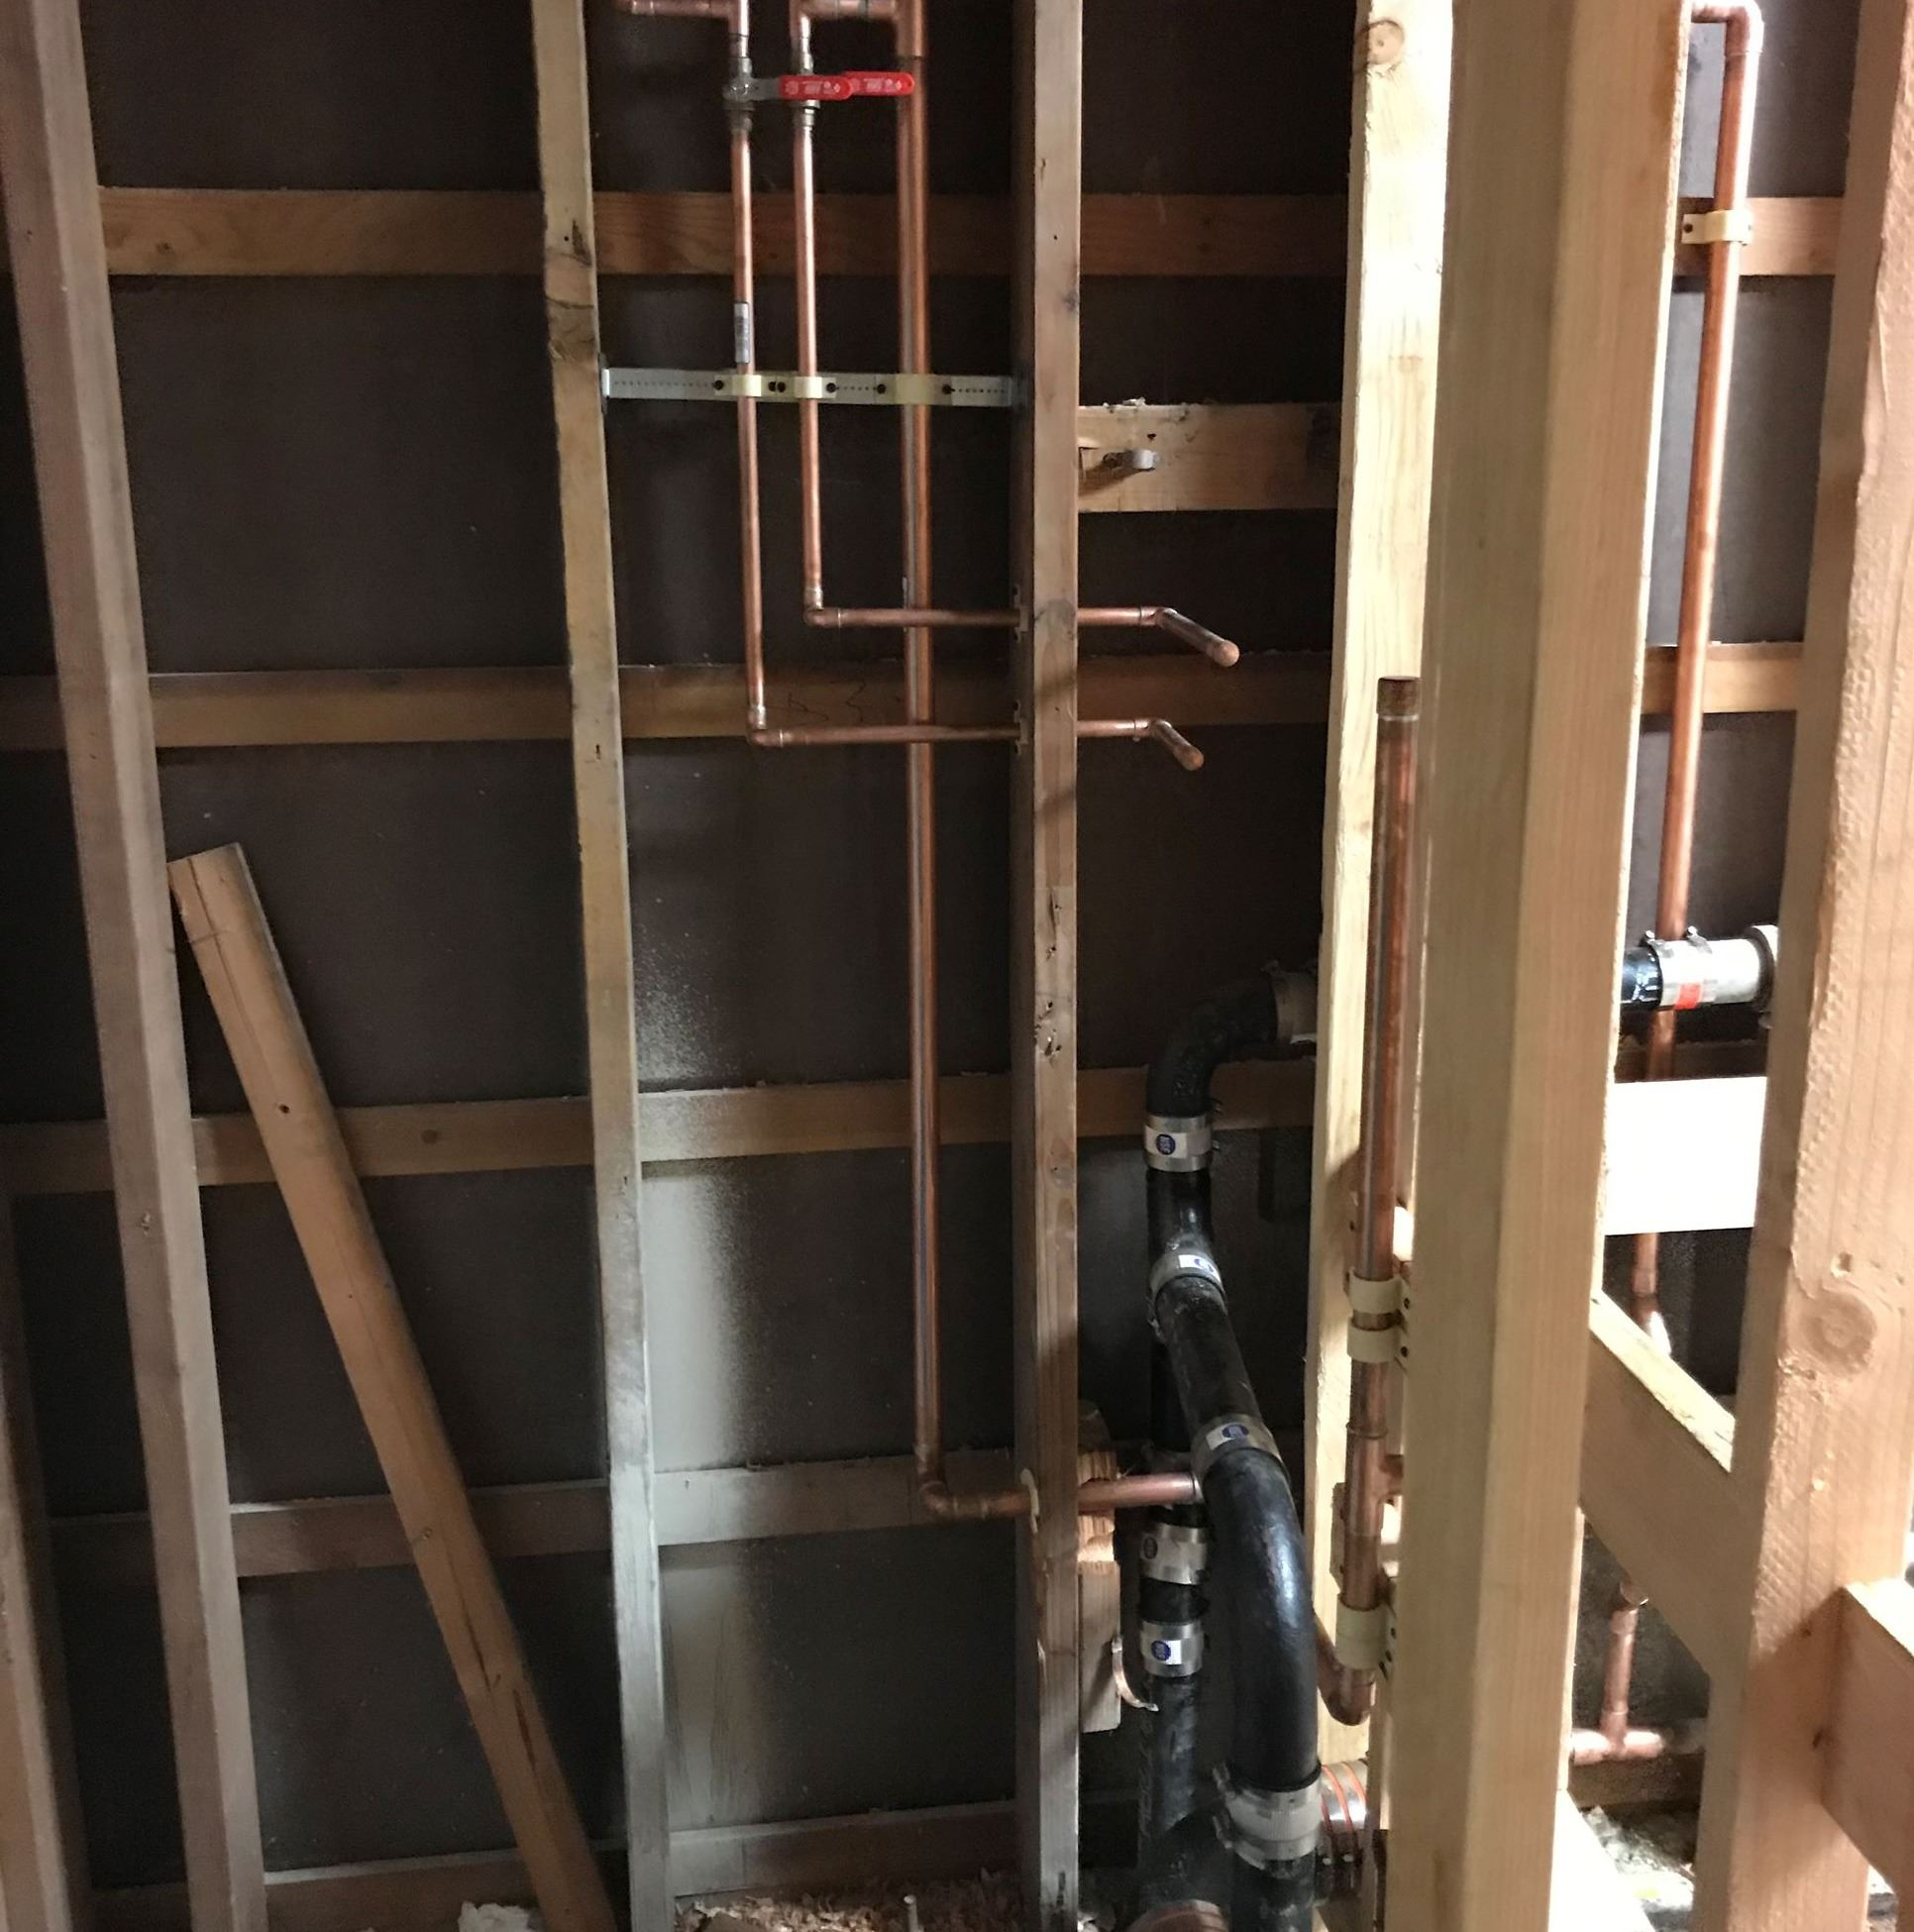 Image shows the South Wall of the custodial closet in construction, this photo is showing the mop si